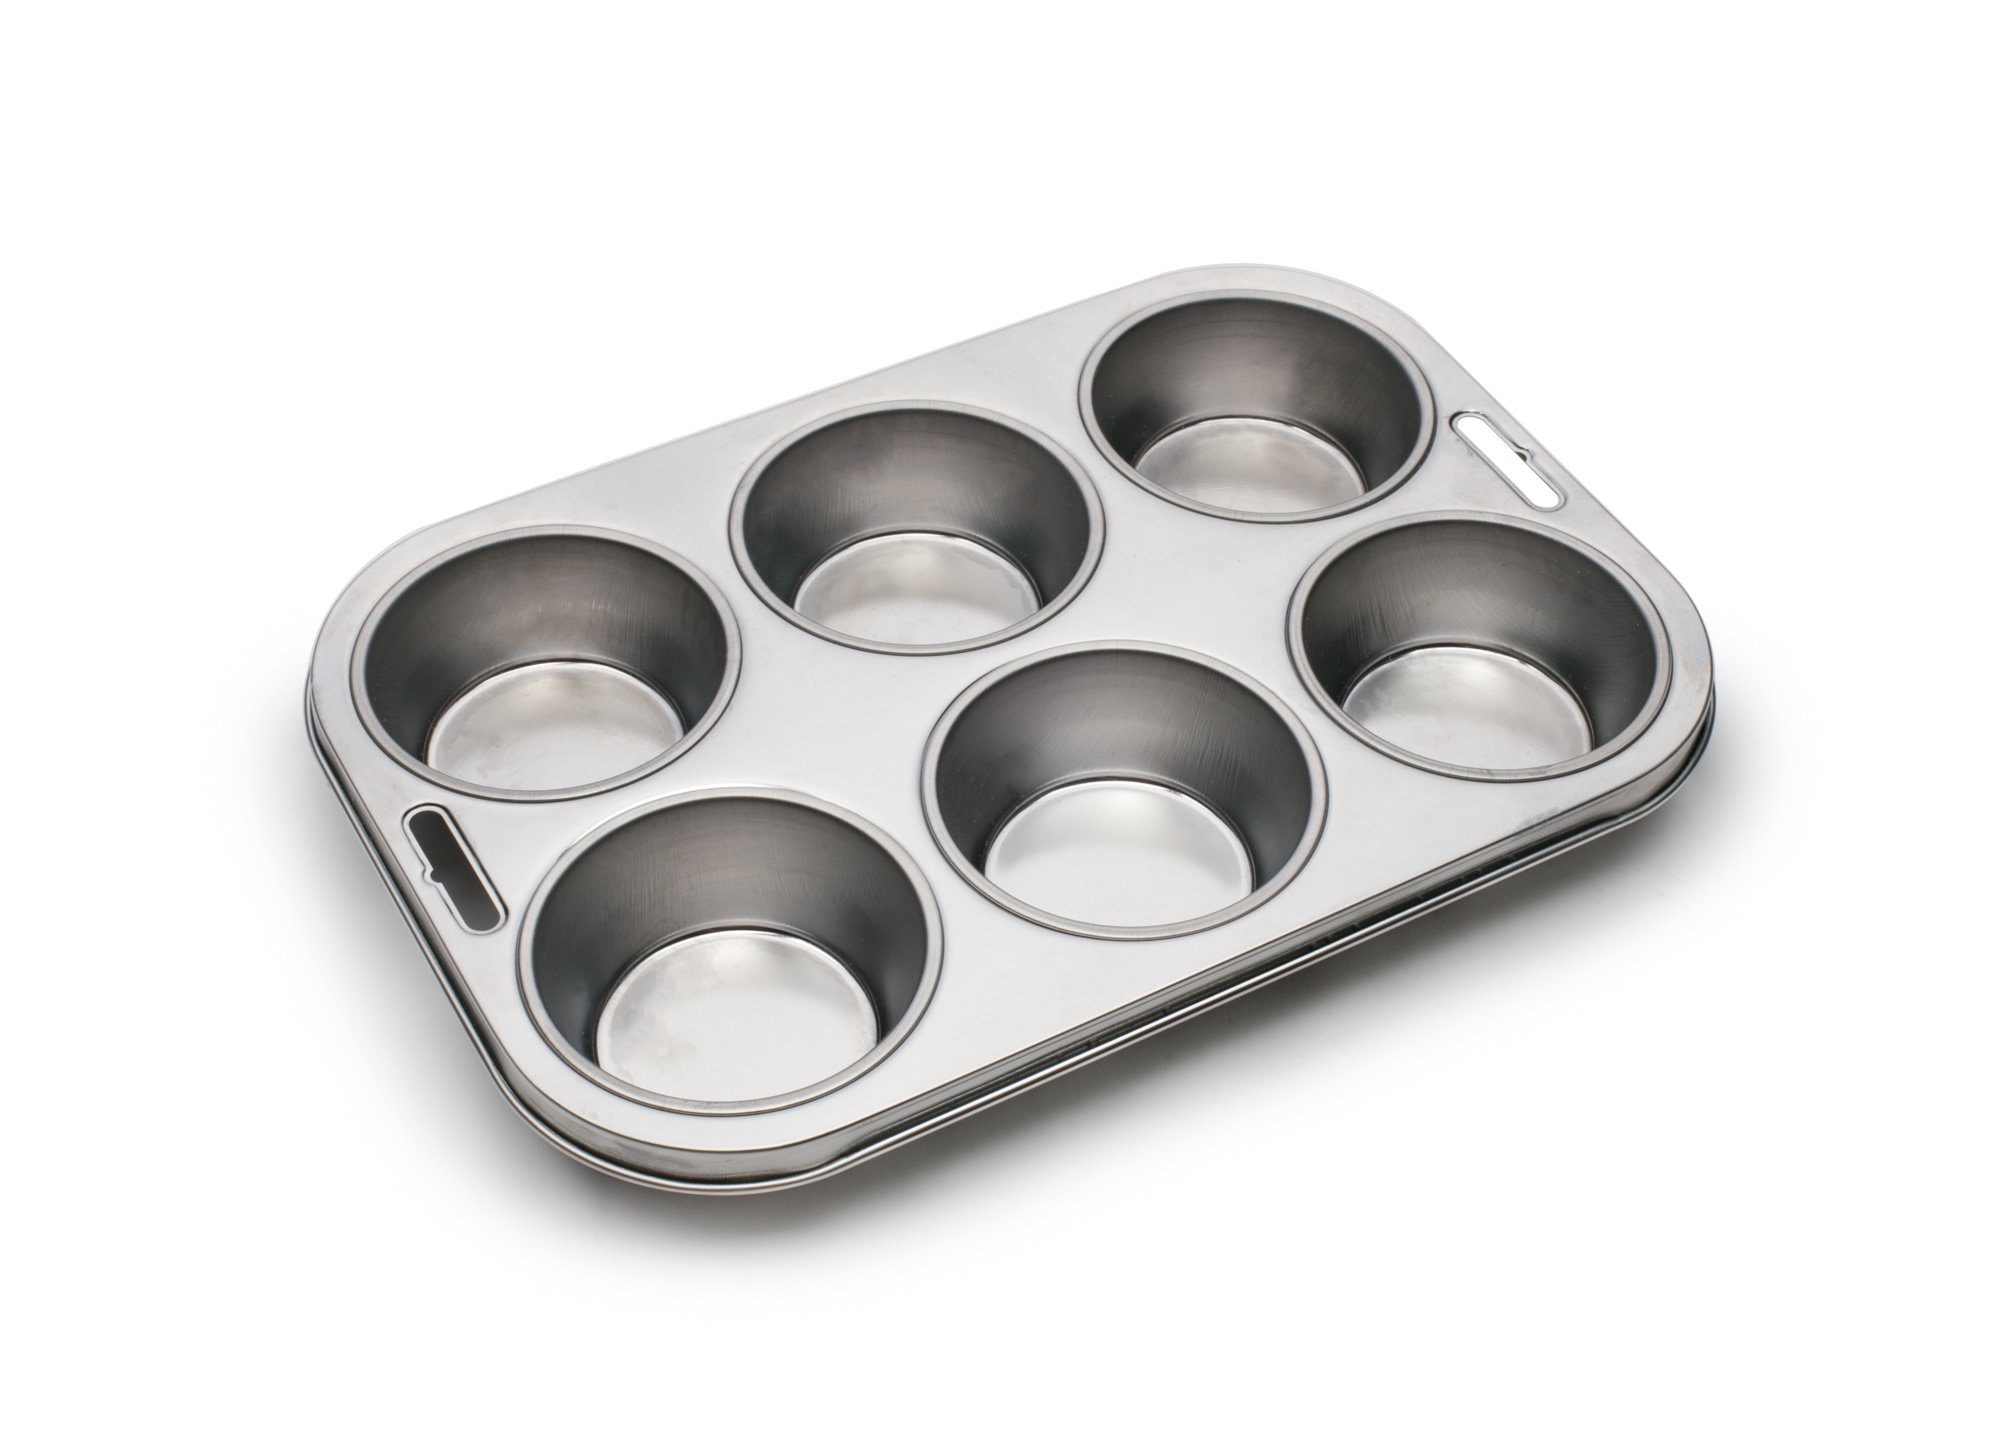 Fox Run 4867 Muffin Pan, 6 Cup, Stainless Steel by Fox Run